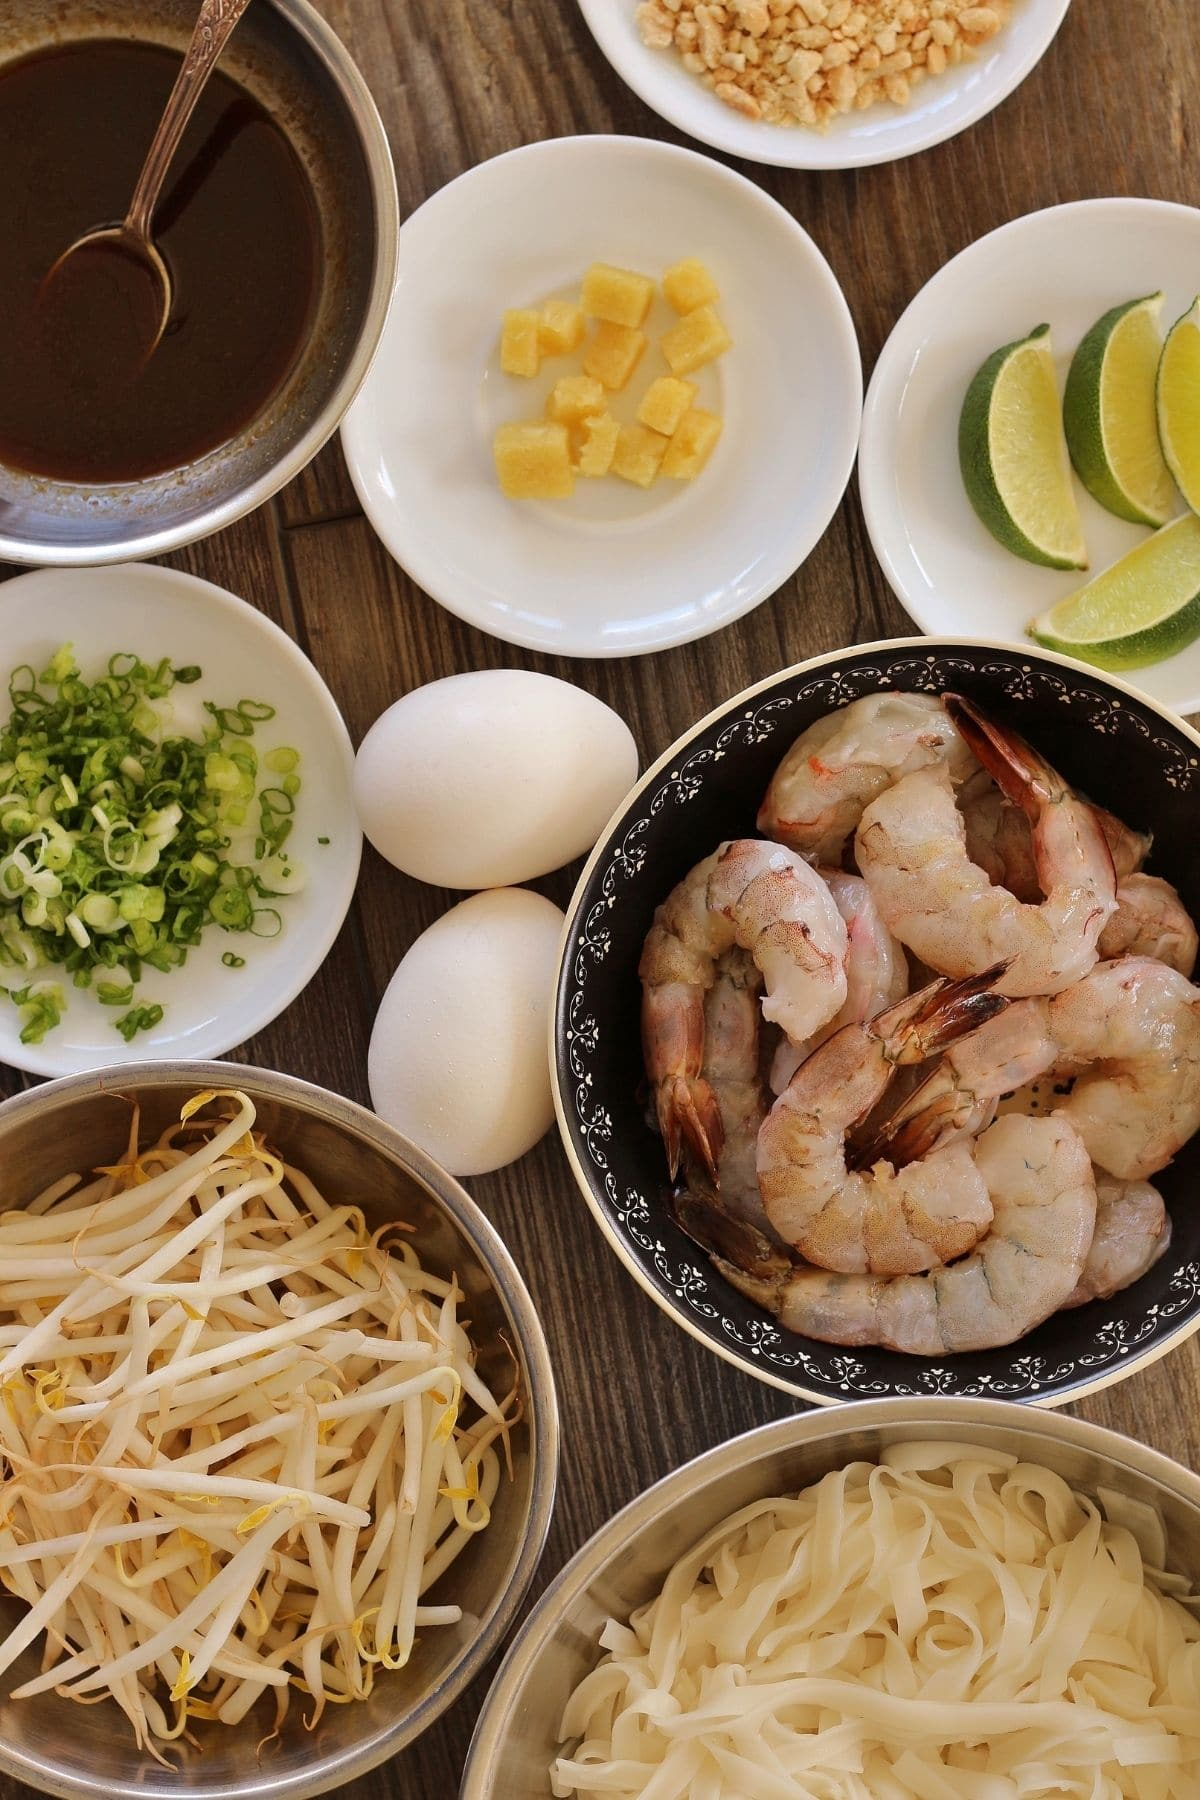 overhead view of ingredients for shrimp pad thai on plates and in bowls